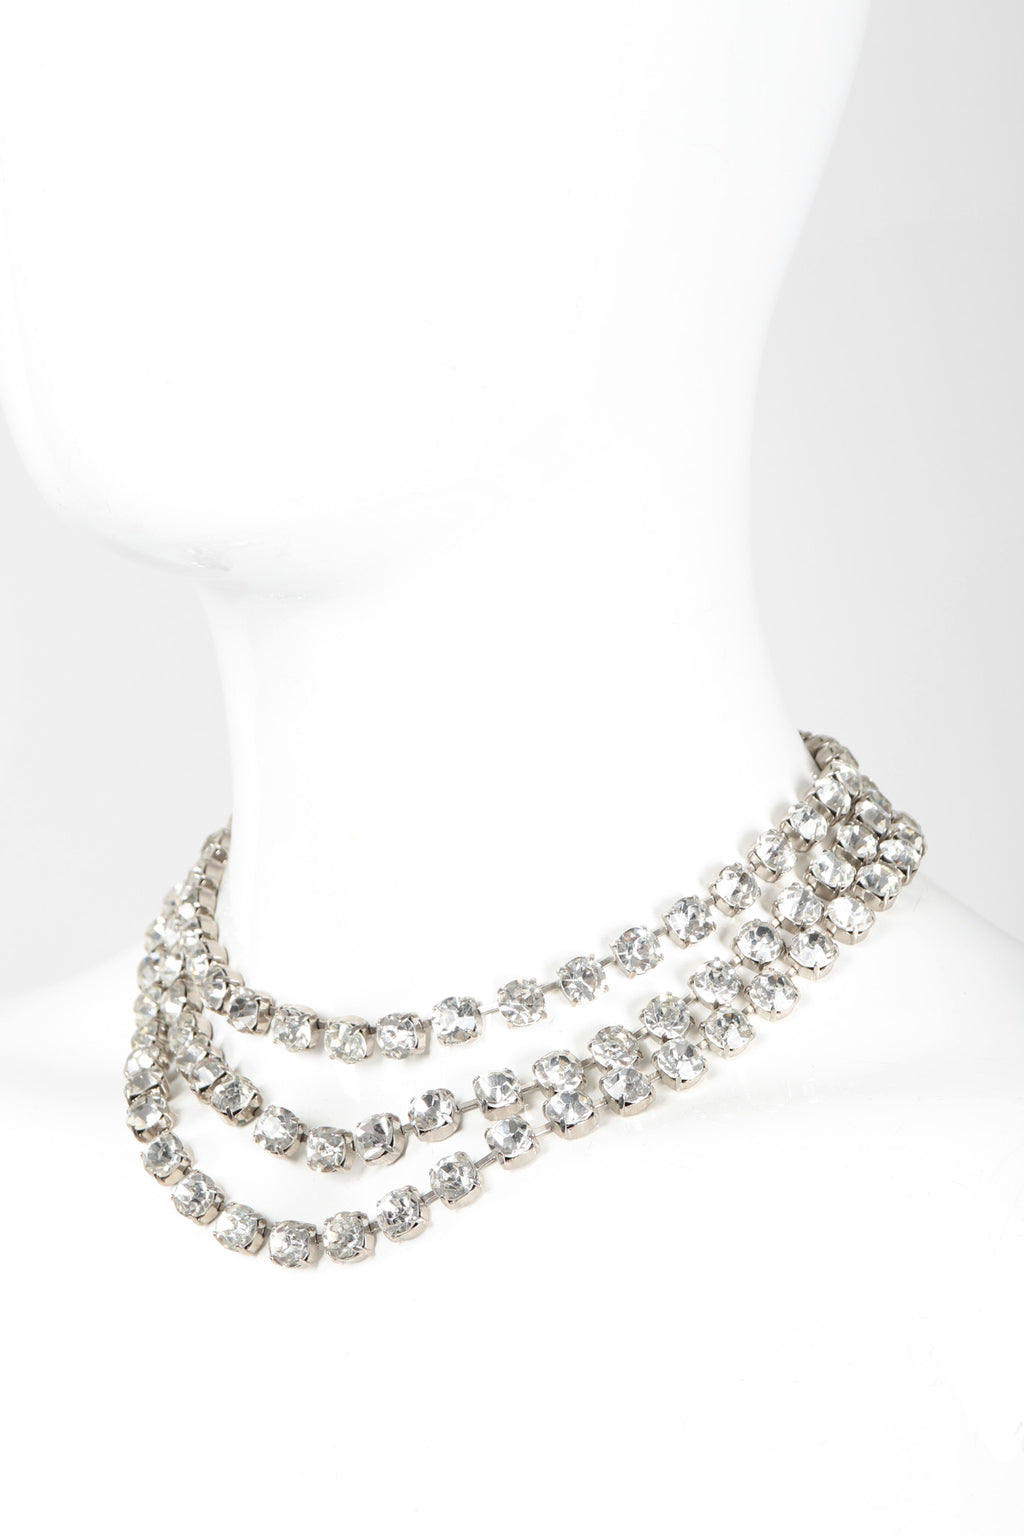 Recess Los Angeles Vintage Triple Strand Rhinestone Crystal Collar Necklace